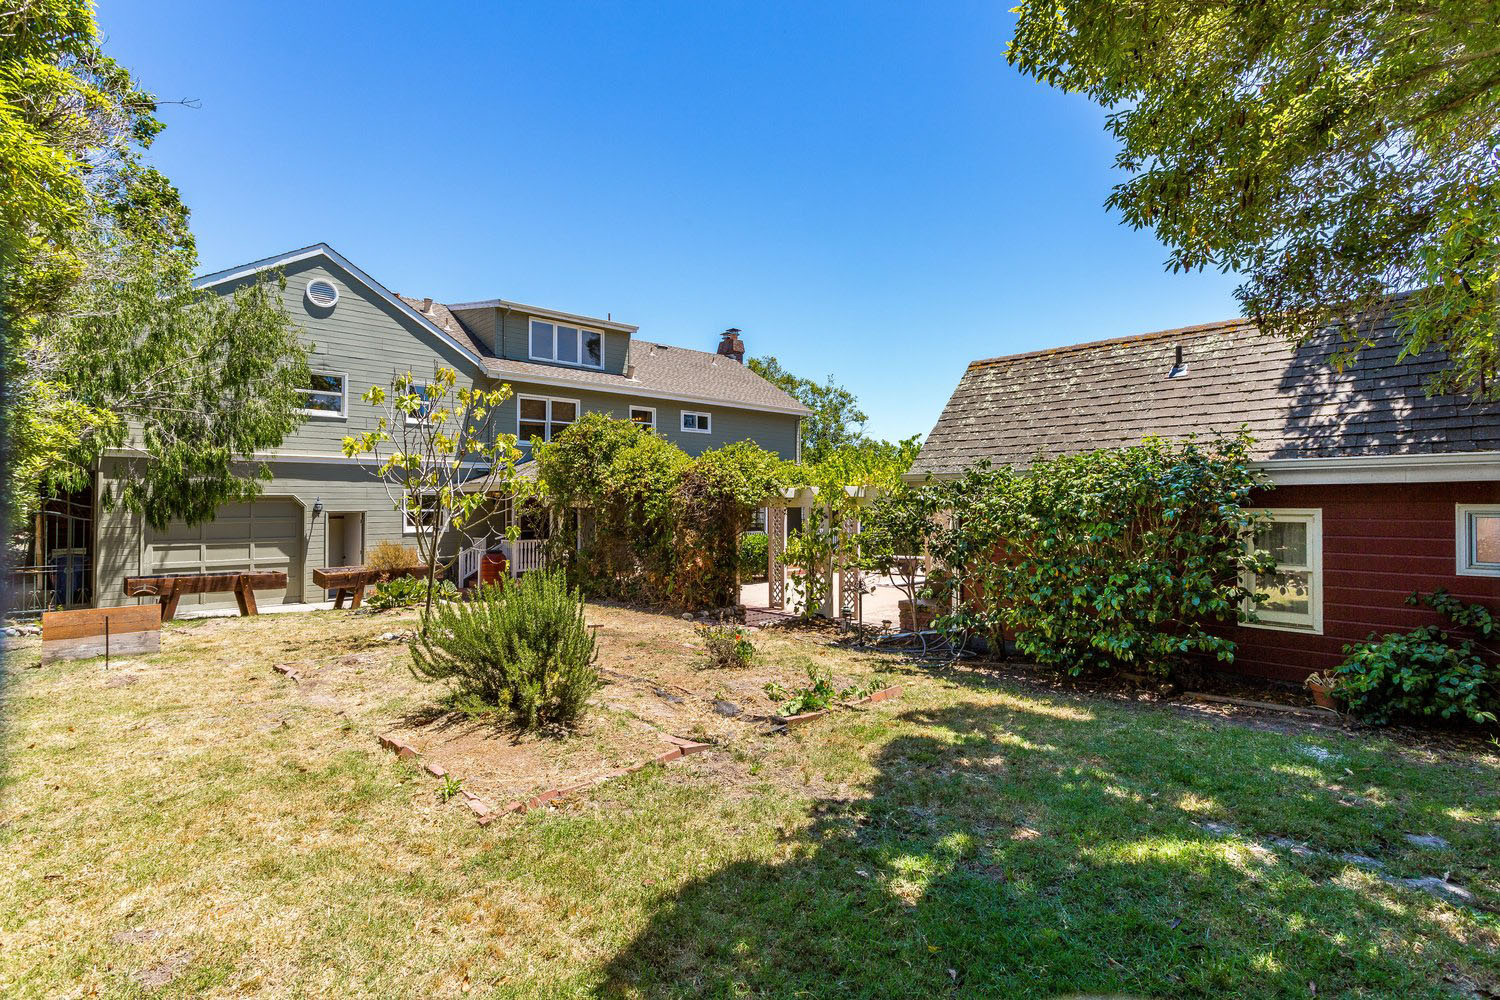 Santa Cruz Real Estate Agents 4 Bedroom & 5 Bathroom Home